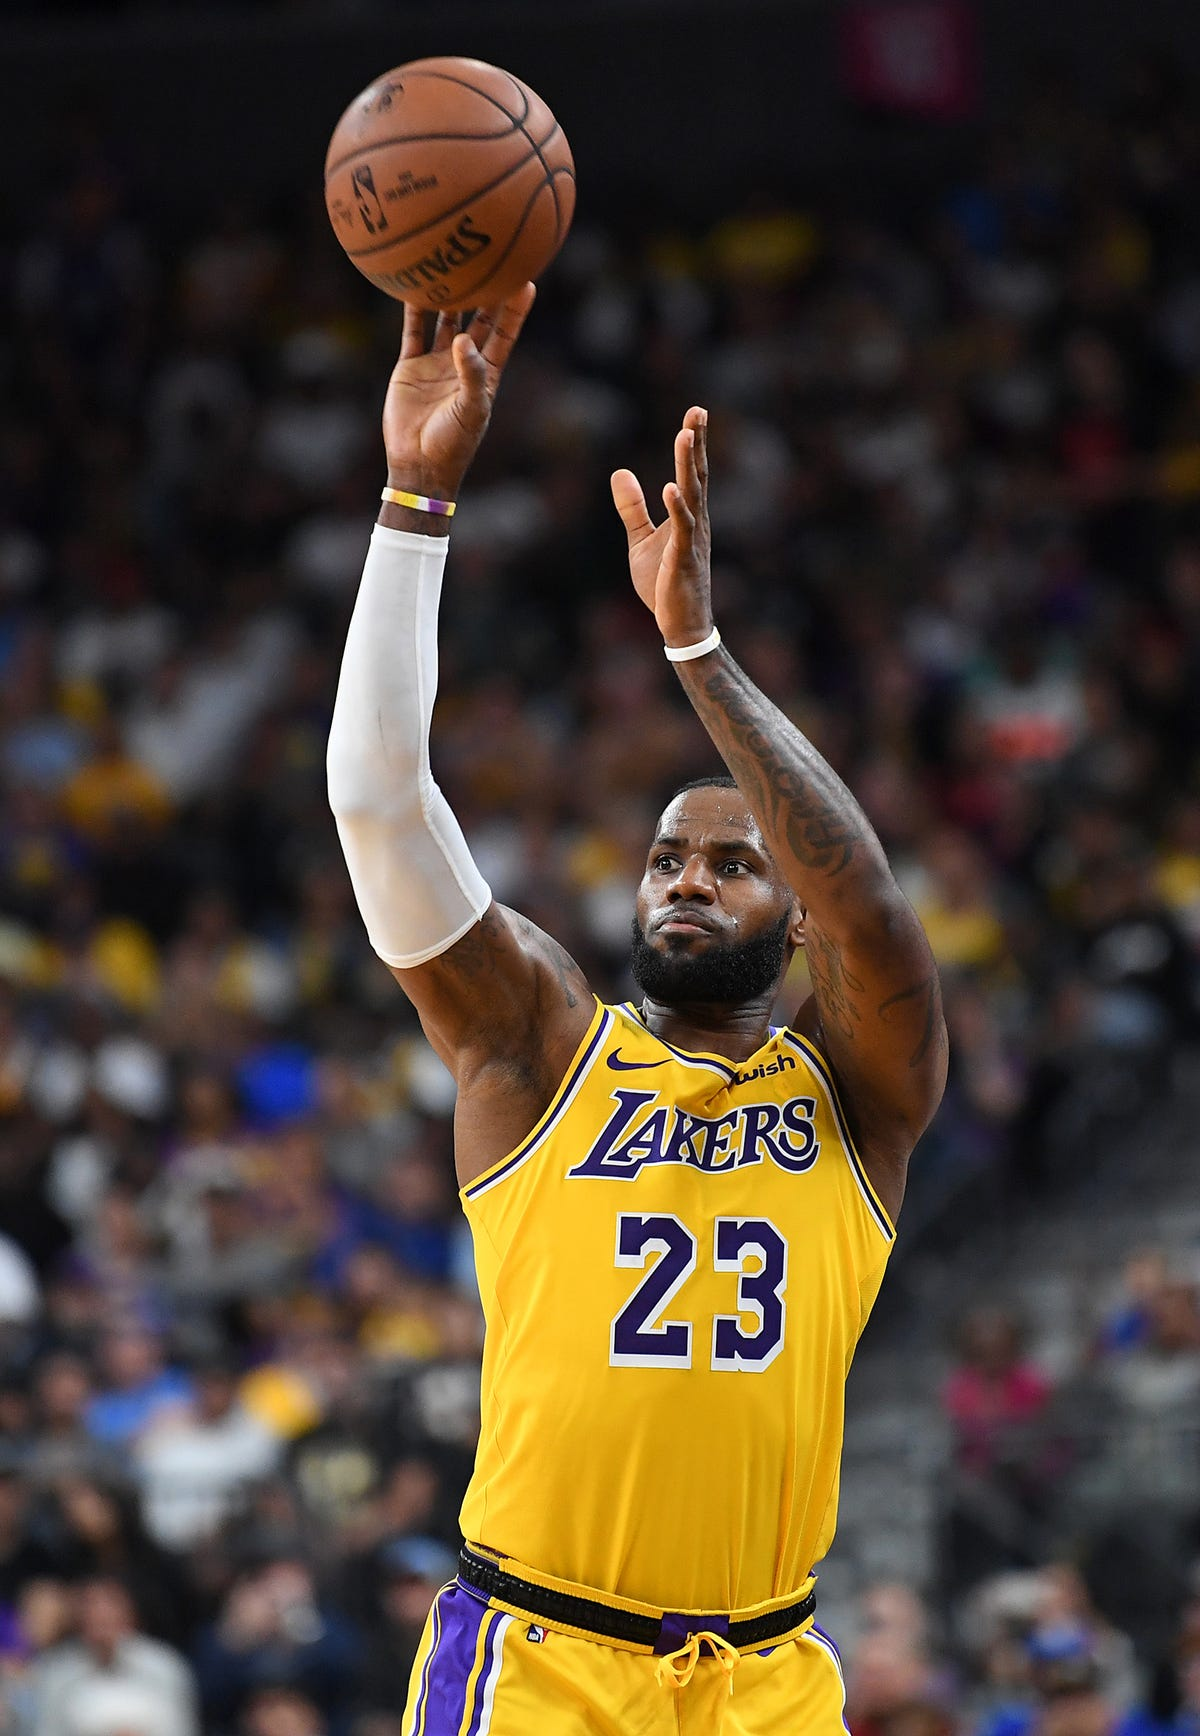 timeless design 86cfe 1dd61 LeBron James: LA Lakers newcomer hits buzzer-beater three vs ...